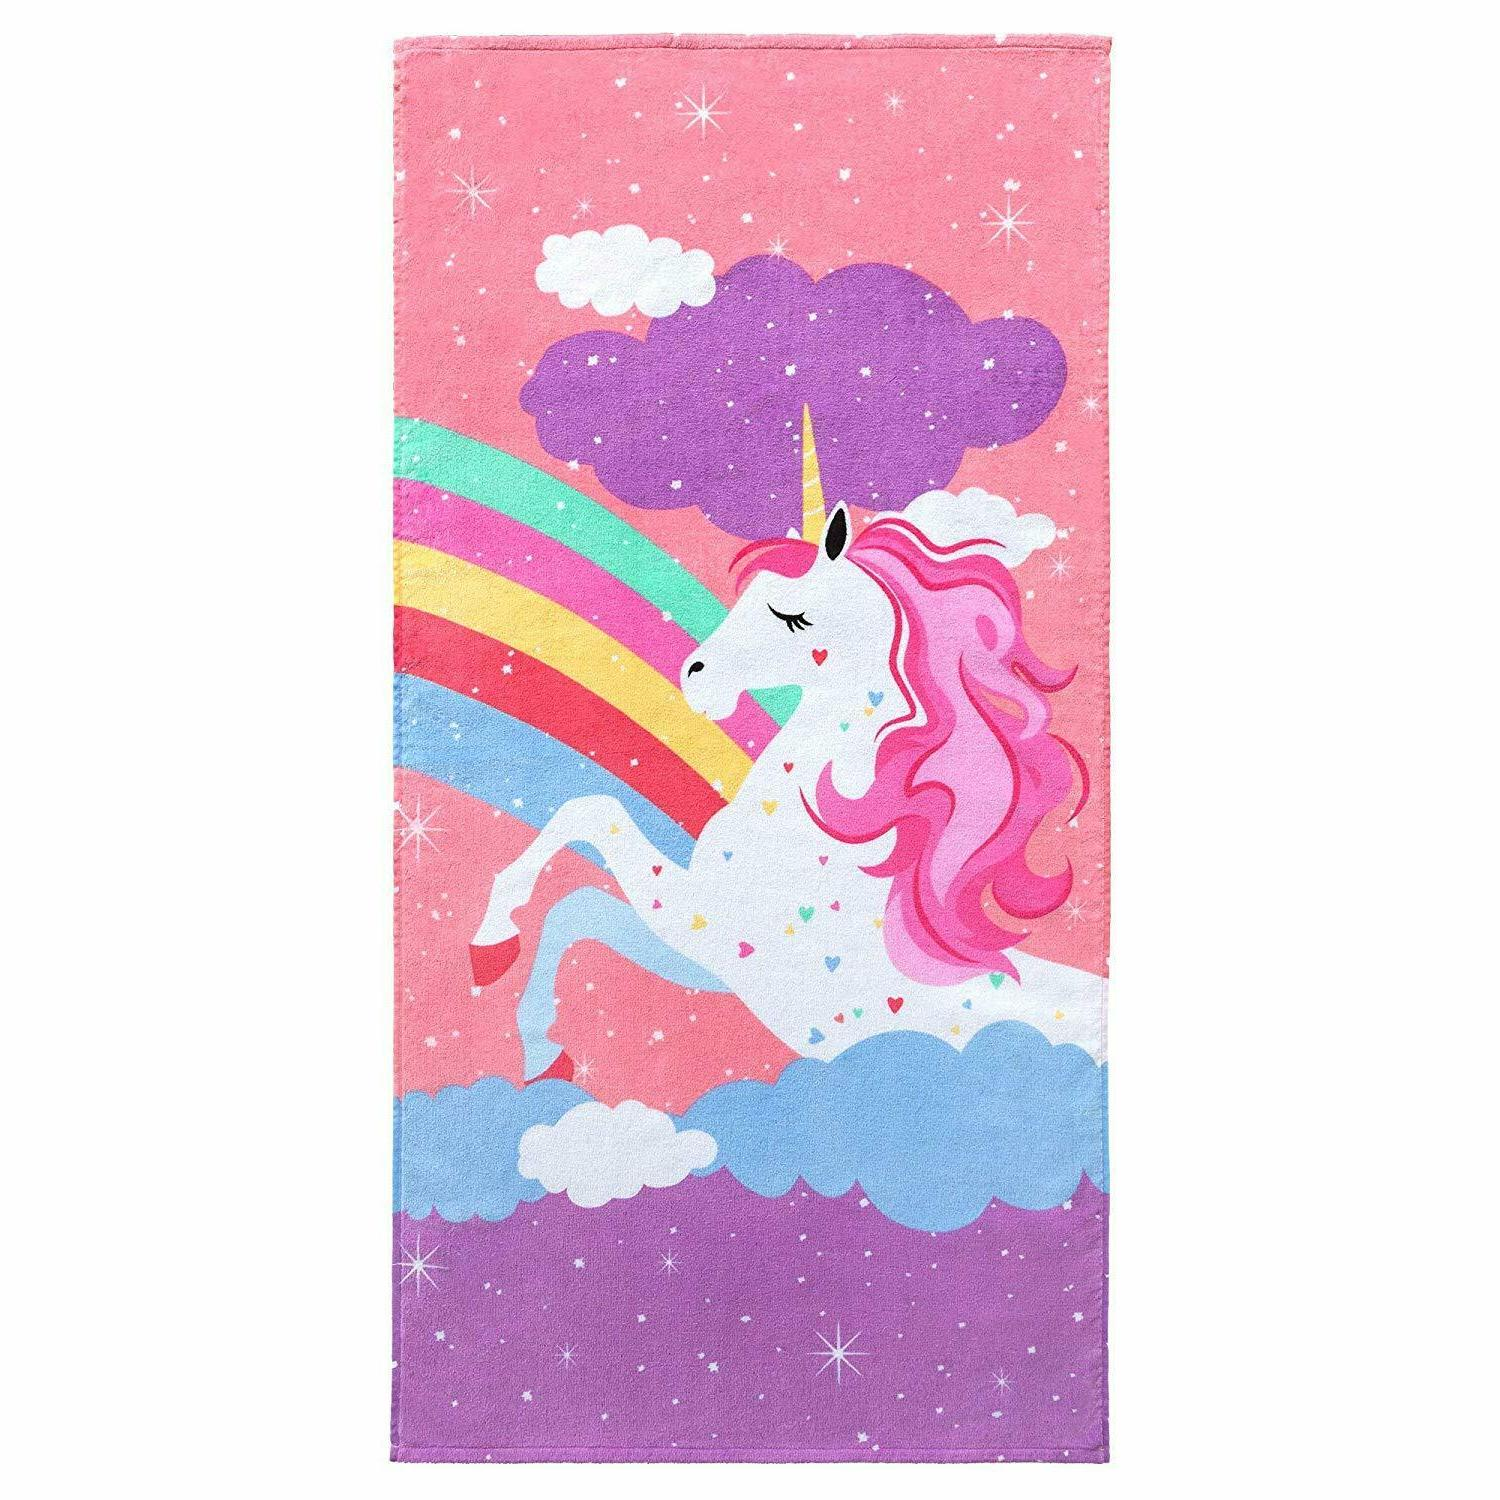 Softerry Rainbow Velour Beach Towel for 28in Cotton